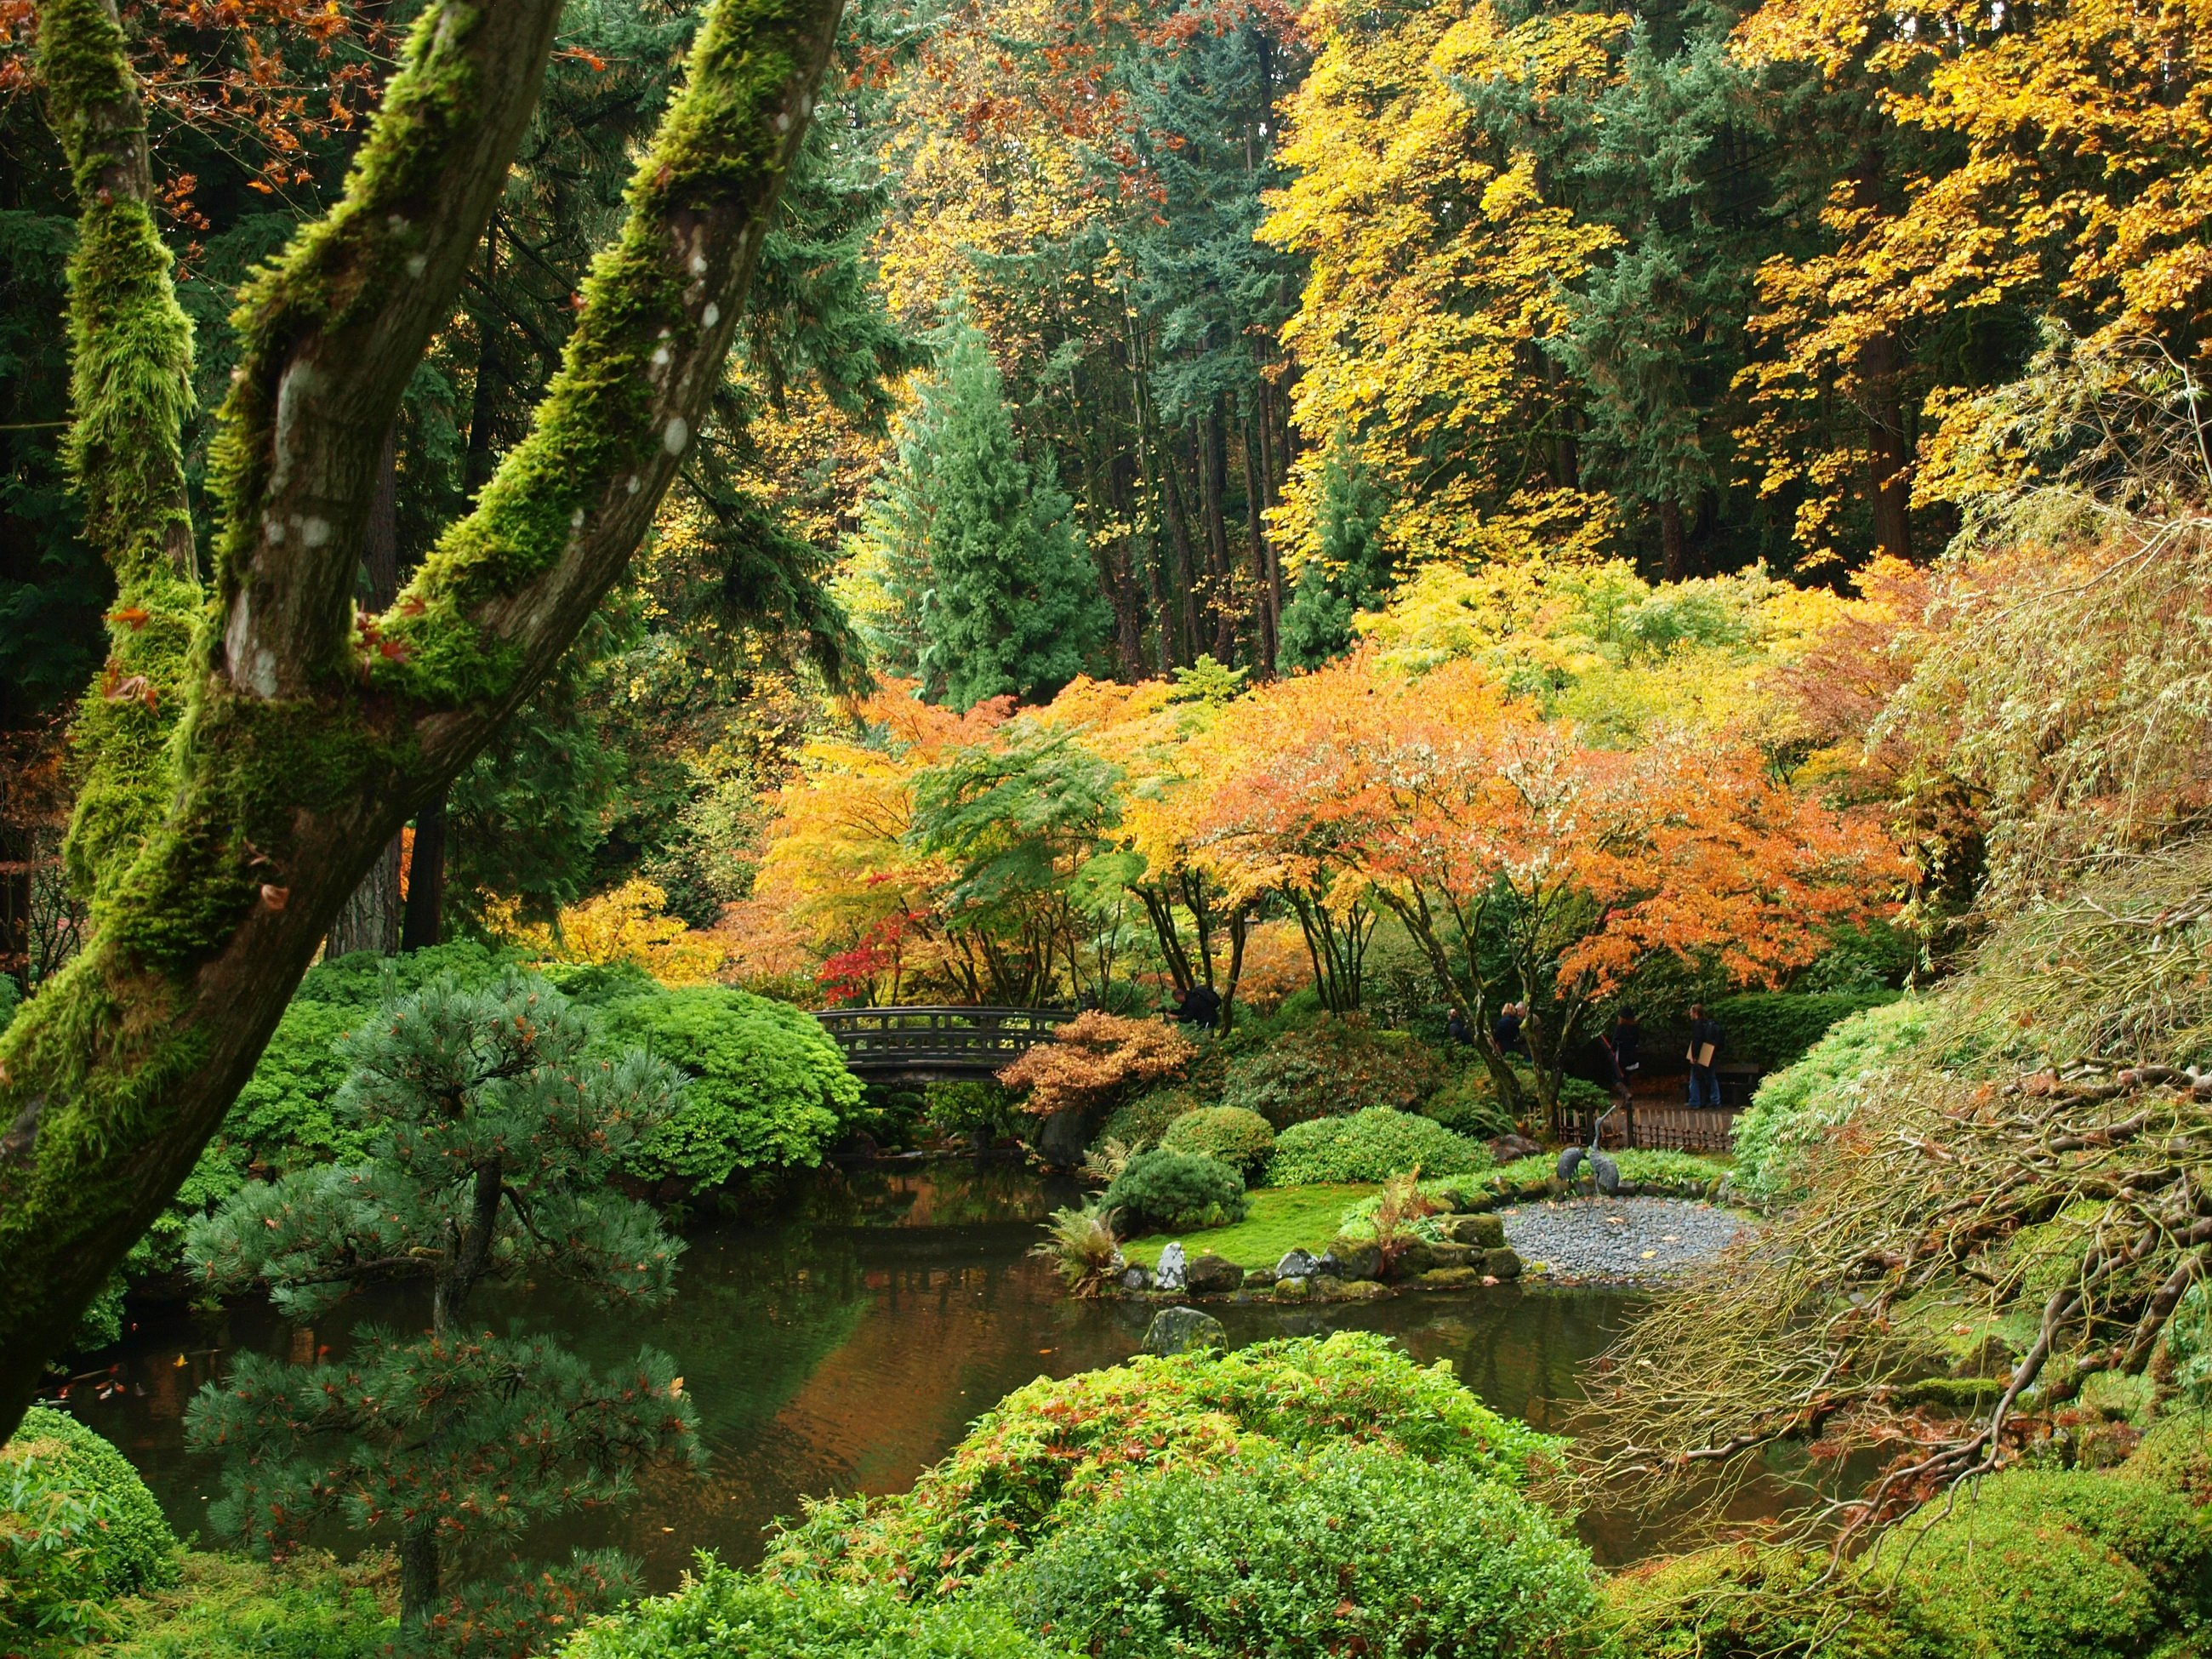 Jardin Japonais Wallpaper Usa Garden Autumn Portland Japanese Shrubs Trees Nature